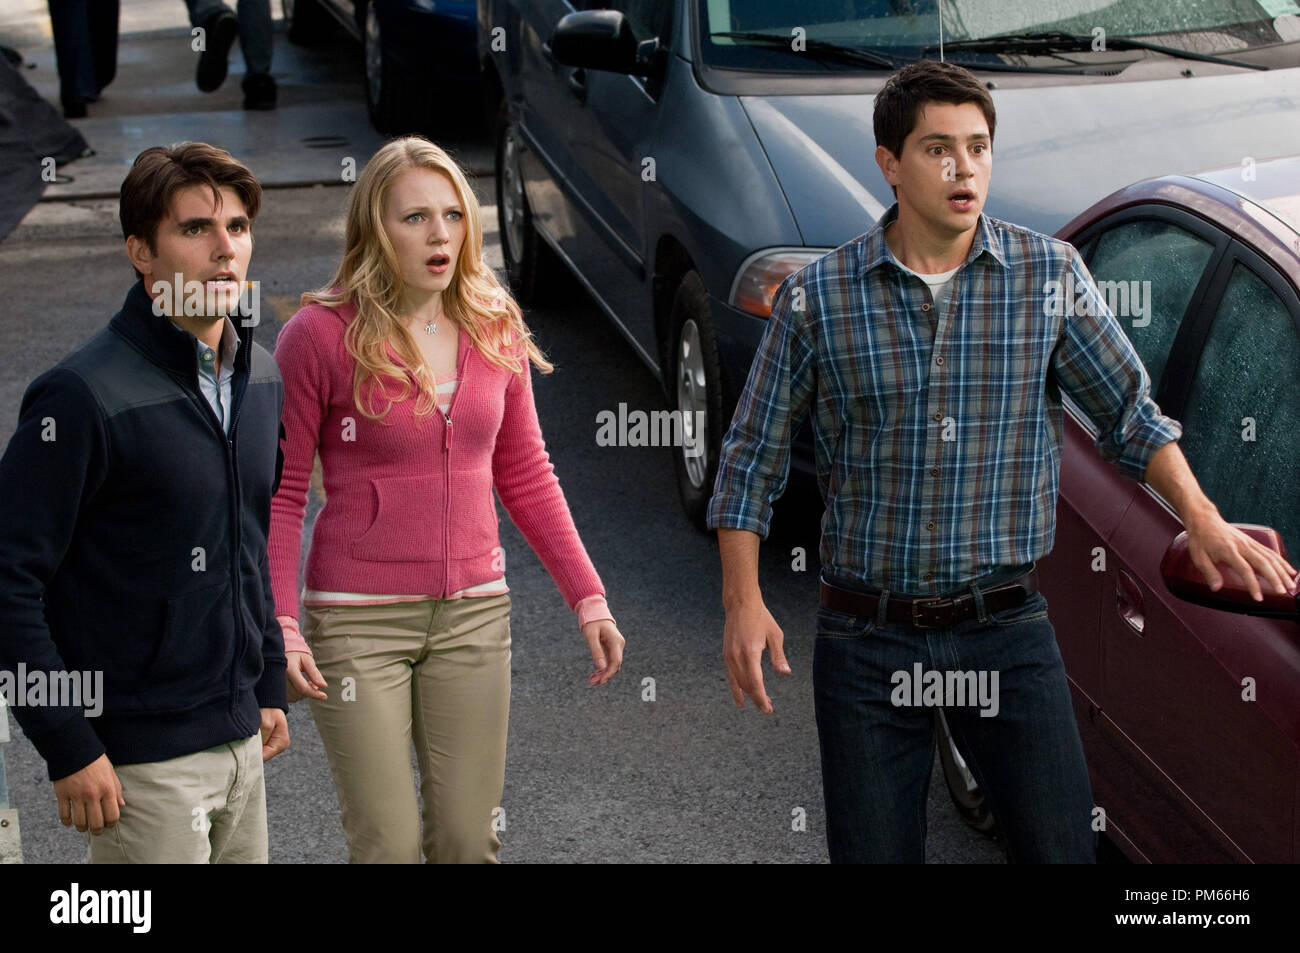 (L-r) MILES FISHER as Peter, EMMA BELL as Molly and NICHOLAS DÕAGOSTO as Sam in New Line CinemaÕs horror film ÒFINAL DESTINATION 5,Ó a Warner Bros. Pictures release. - Stock Image